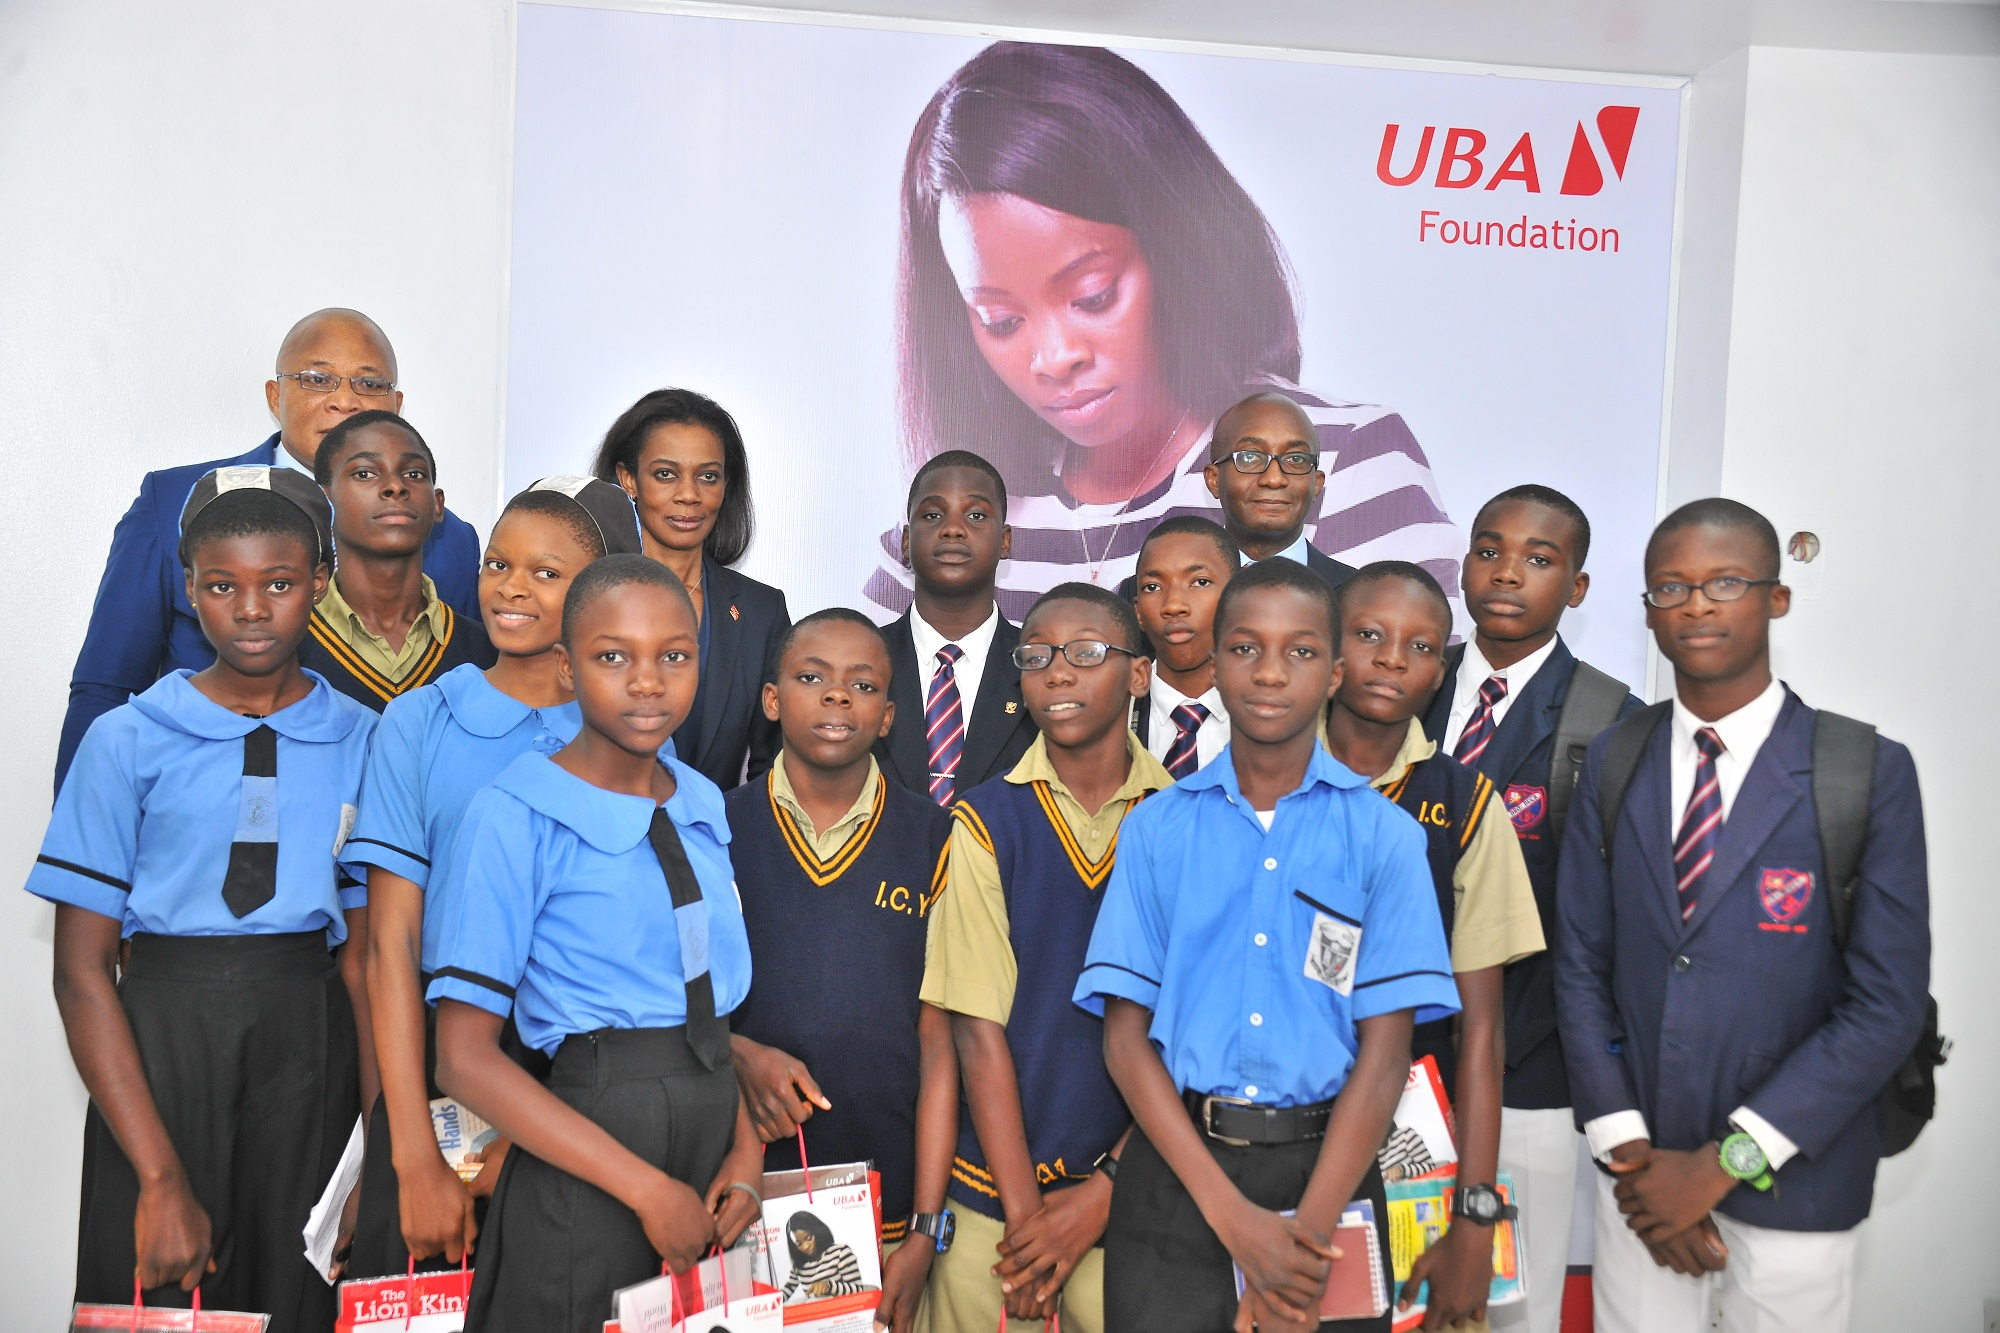 L-R Group Head,  External Relations, UBA Plc, Mr. Nasir Ramon; Director, Marketing and Corporate Relations and Chief Executive Officer, UBA Foundation, Mrs Bola Atta and Deputy CEO, Anglophone Africa, UBA Plc, Ebele Ogbue flanked by students from various schools in Lagos during the Launch of the 2017, UBA Foundation National Essay Competition held at the UBA House in , Lagos on Tuesday